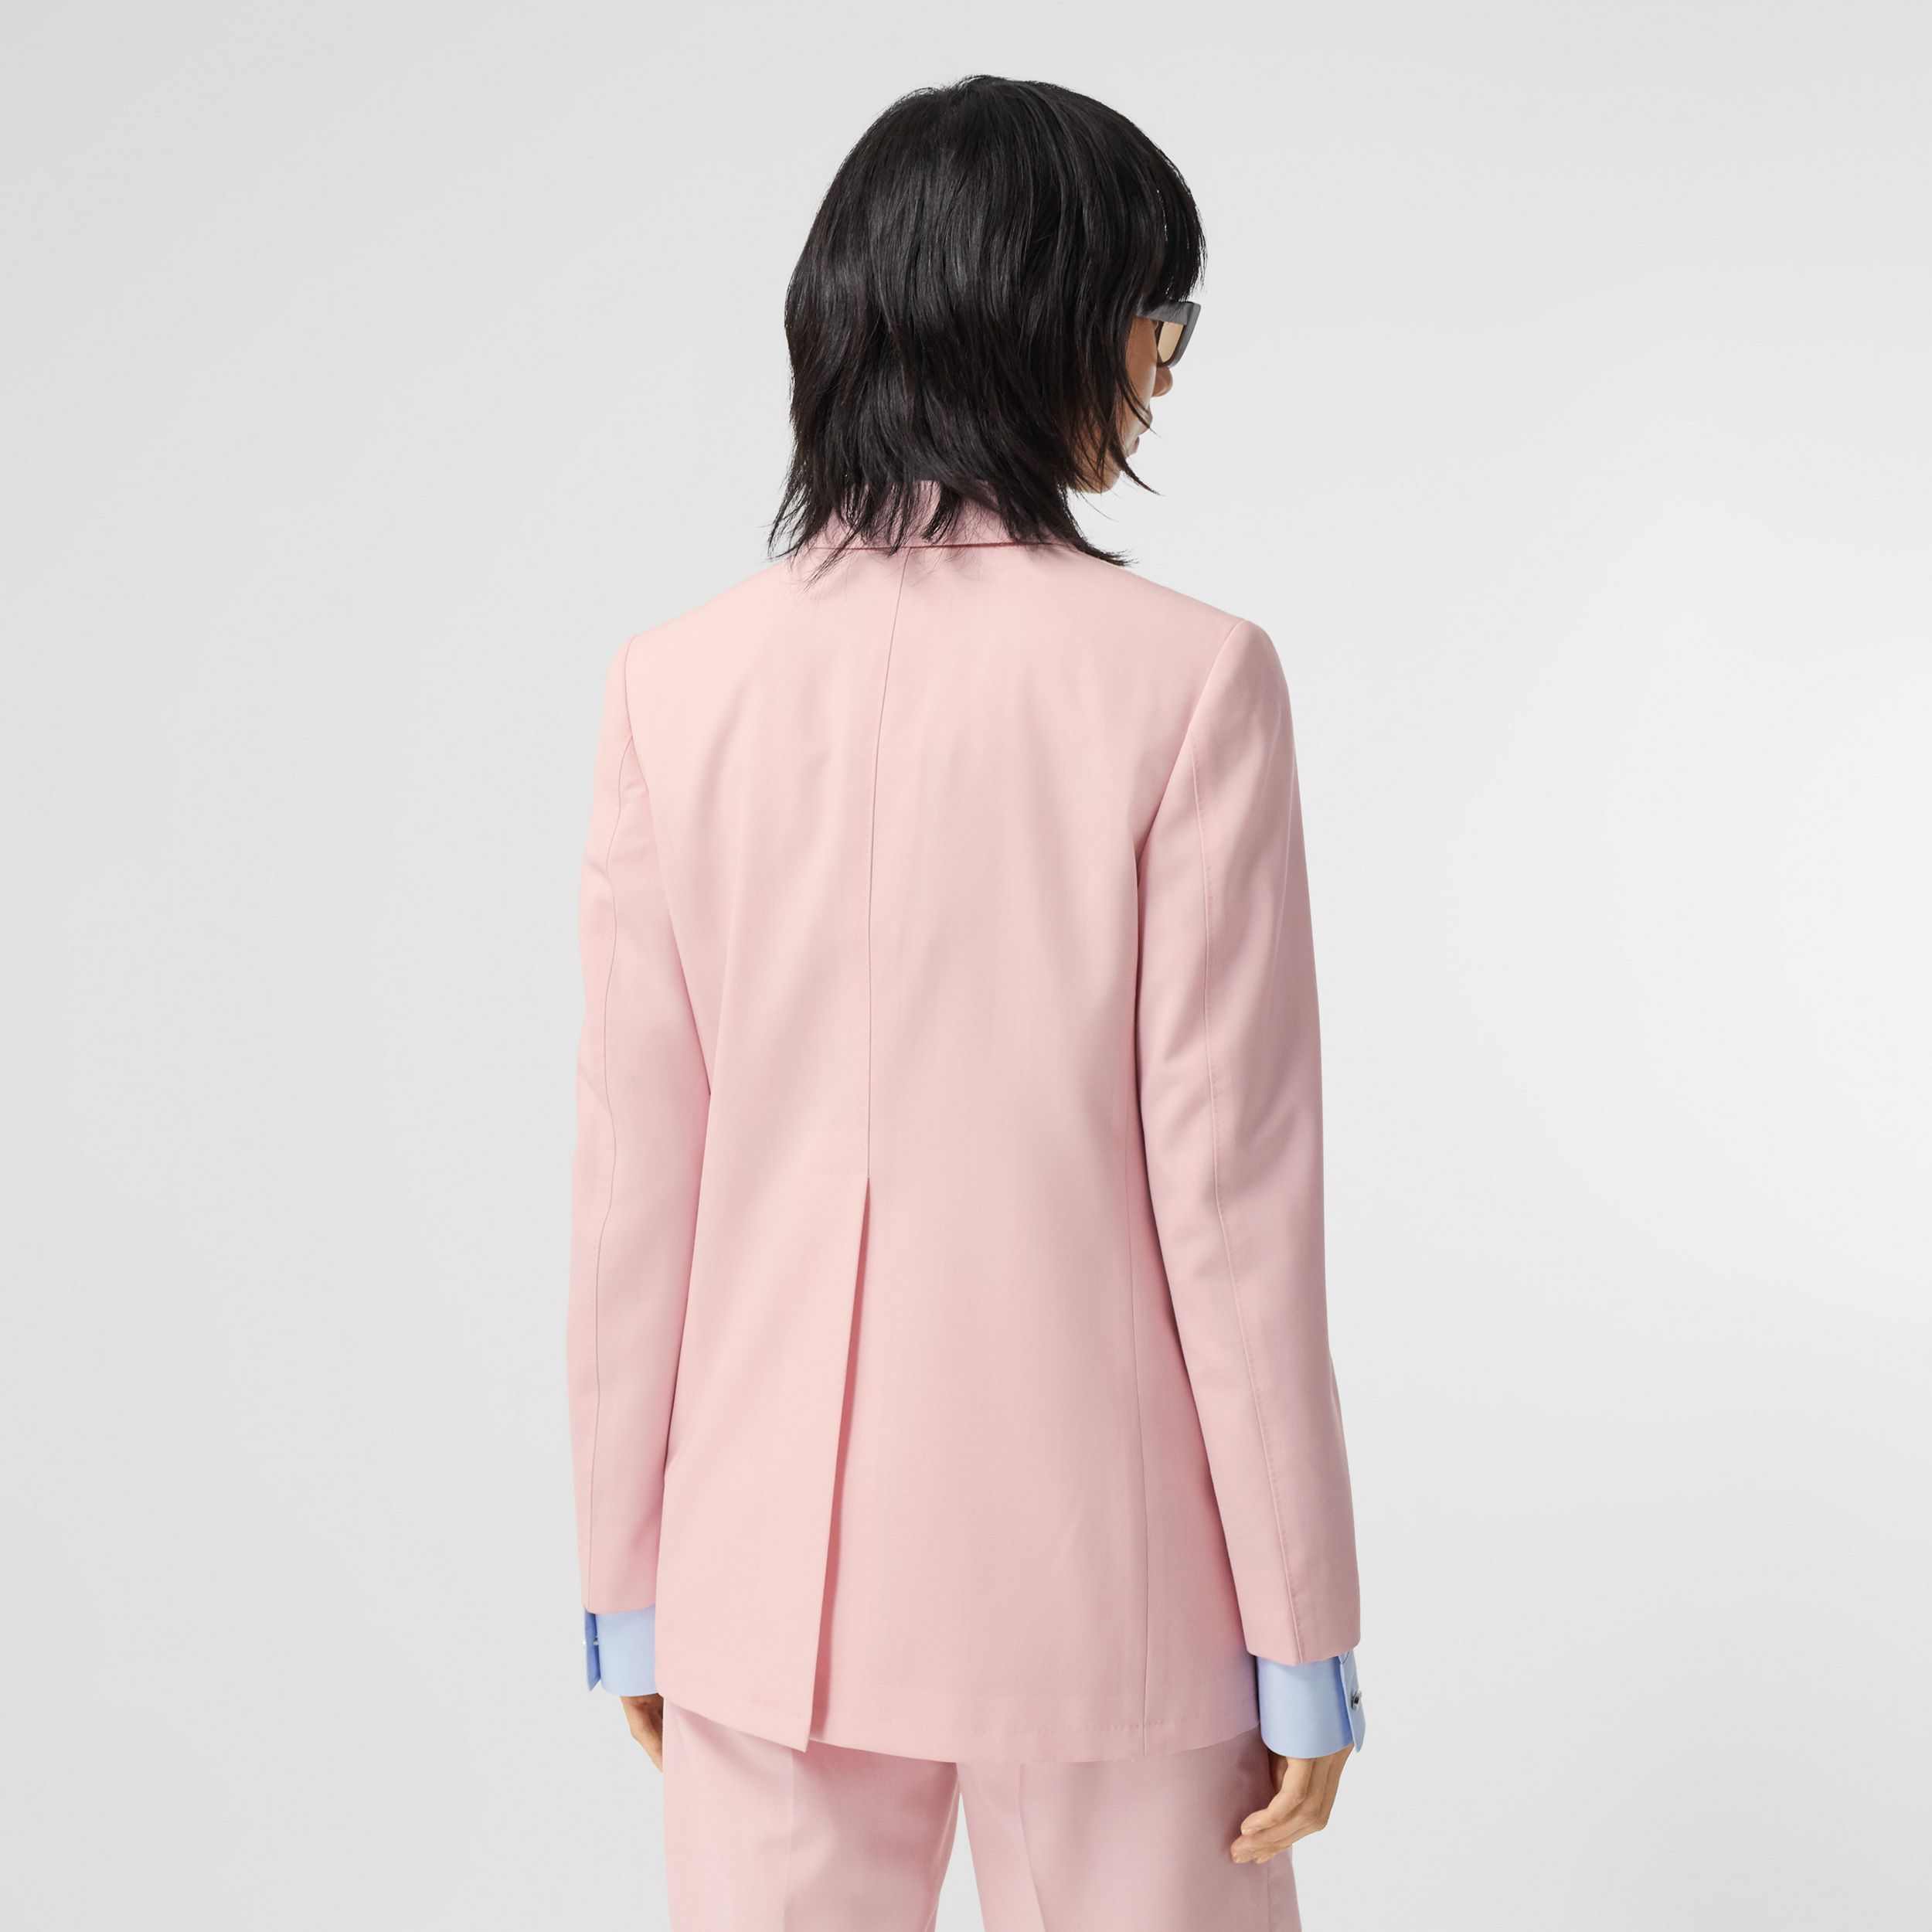 Tumbled Wool Double-breasted Blazer in Soft Pink - Women | Burberry Canada - 3